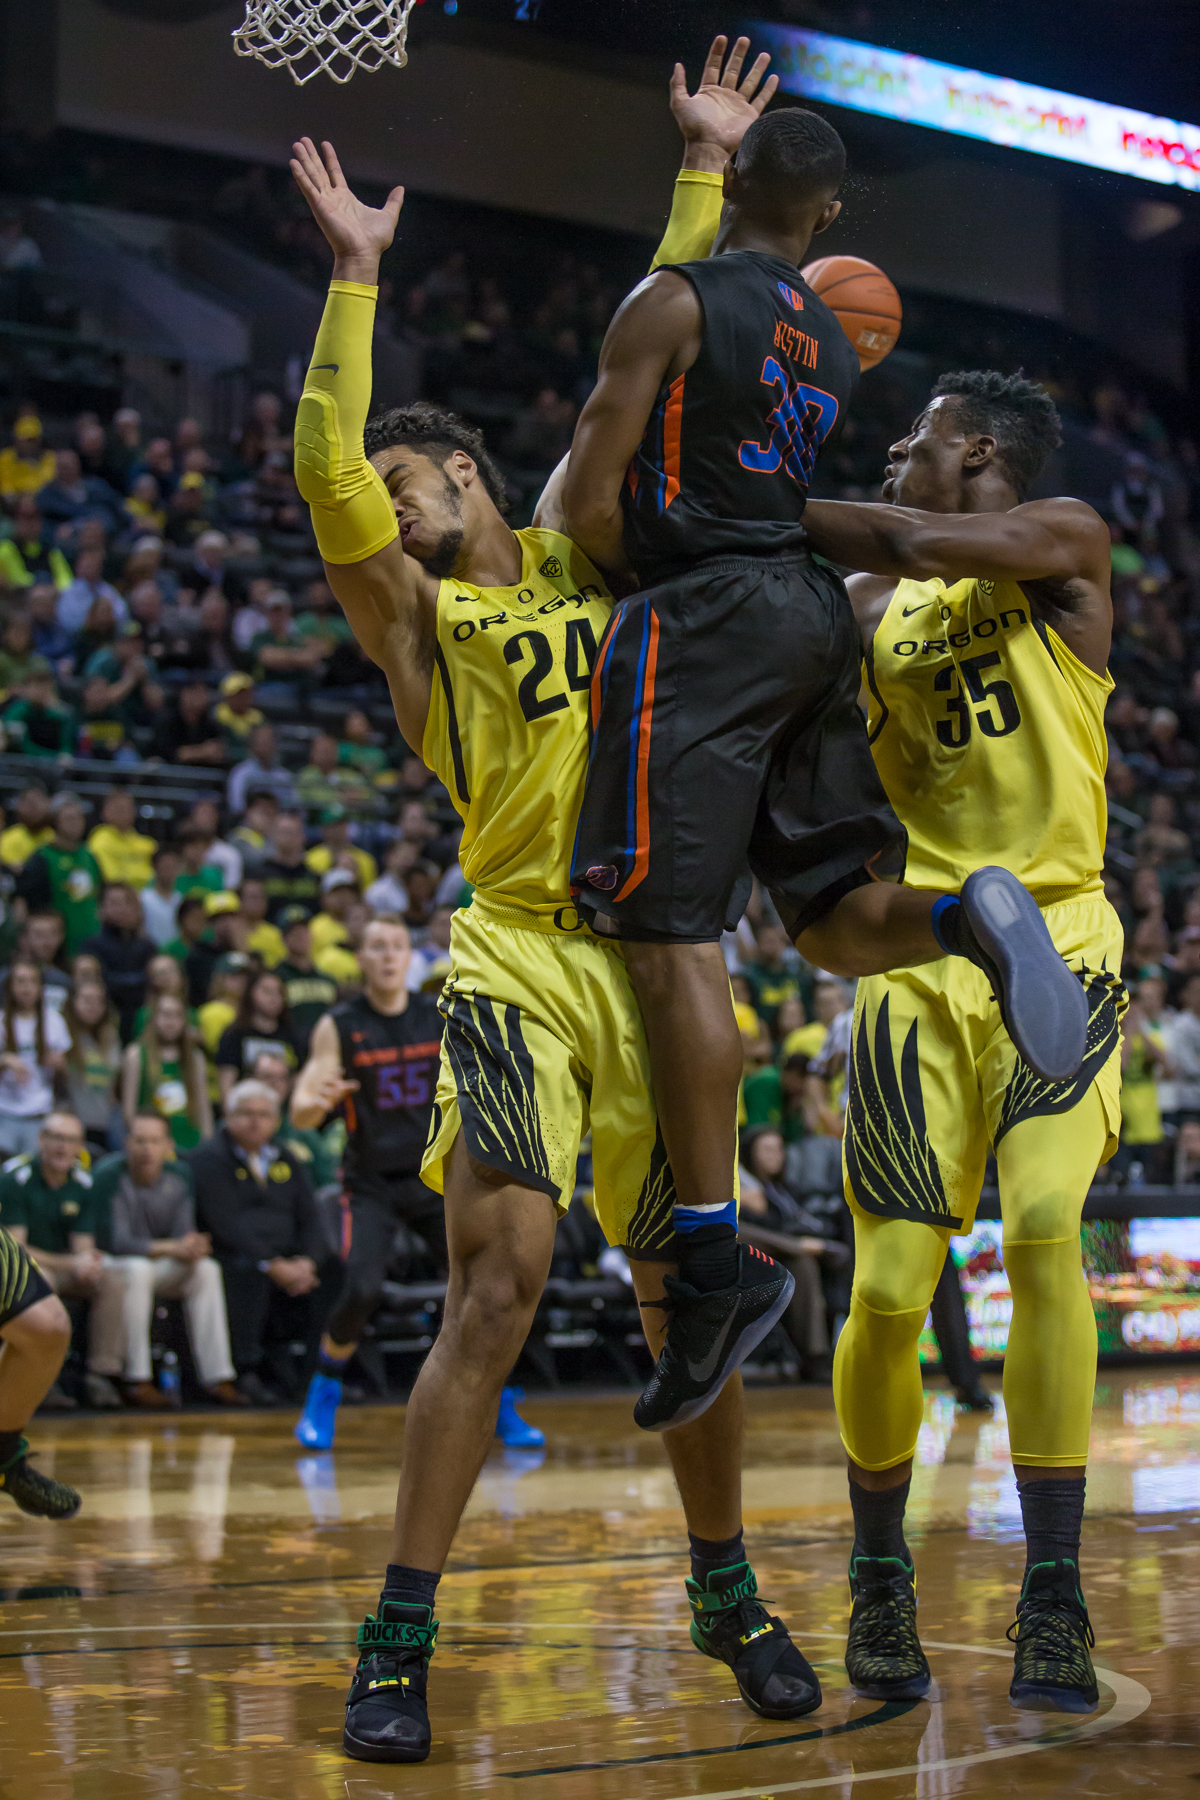 Oregon forward Dillon Brooks (#24) takes a charge from Boise State guard Paris Austin (#30). After trailing for most of the game, the Oregon Ducks defeated the Boise State Broncos 68-63. Photo by Dillon Vibes